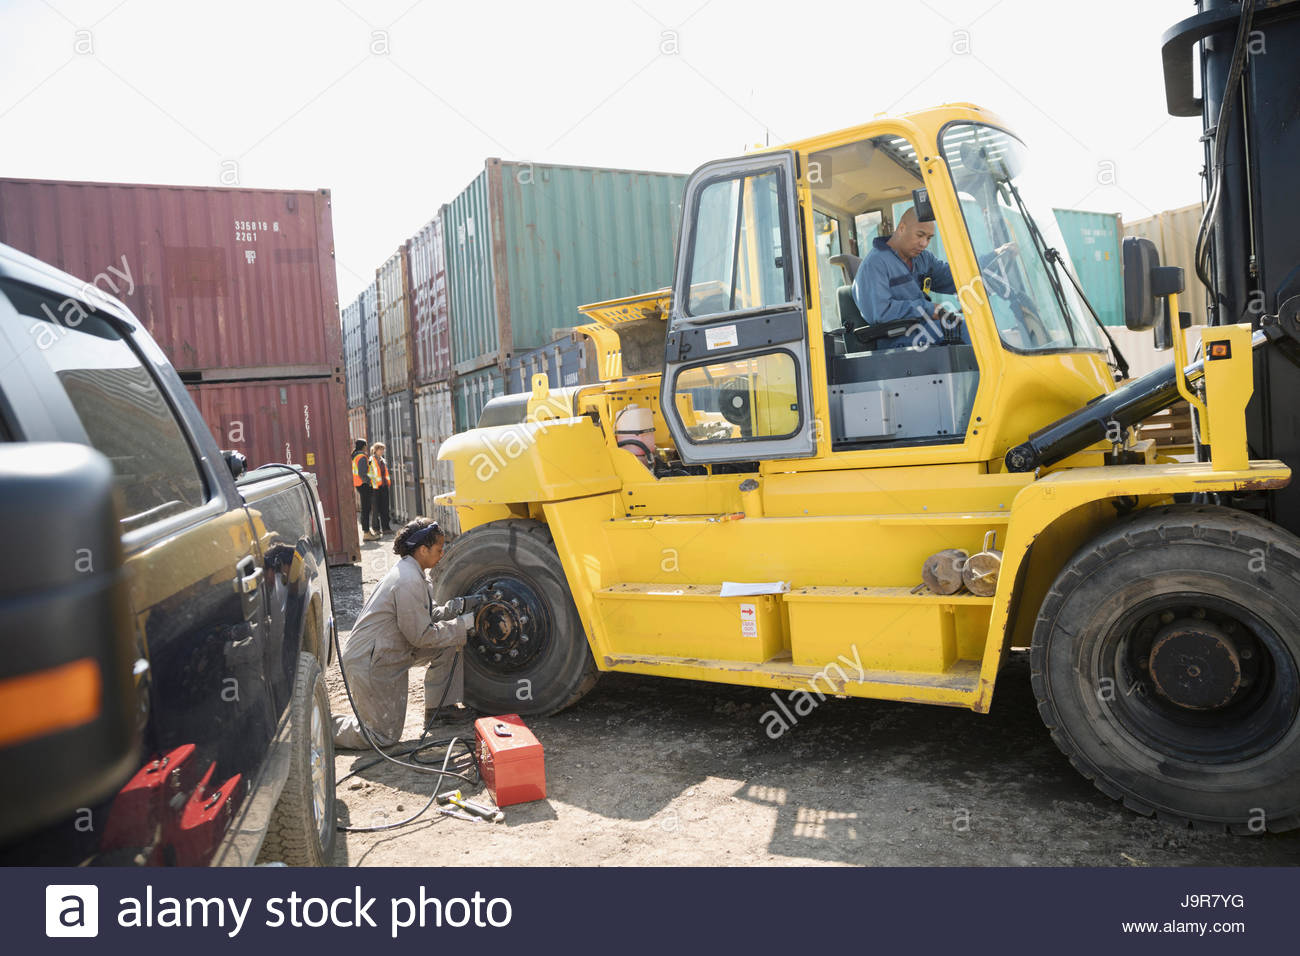 Mechanics fixing heavy machinery in sunny industrial container yard - Stock Image